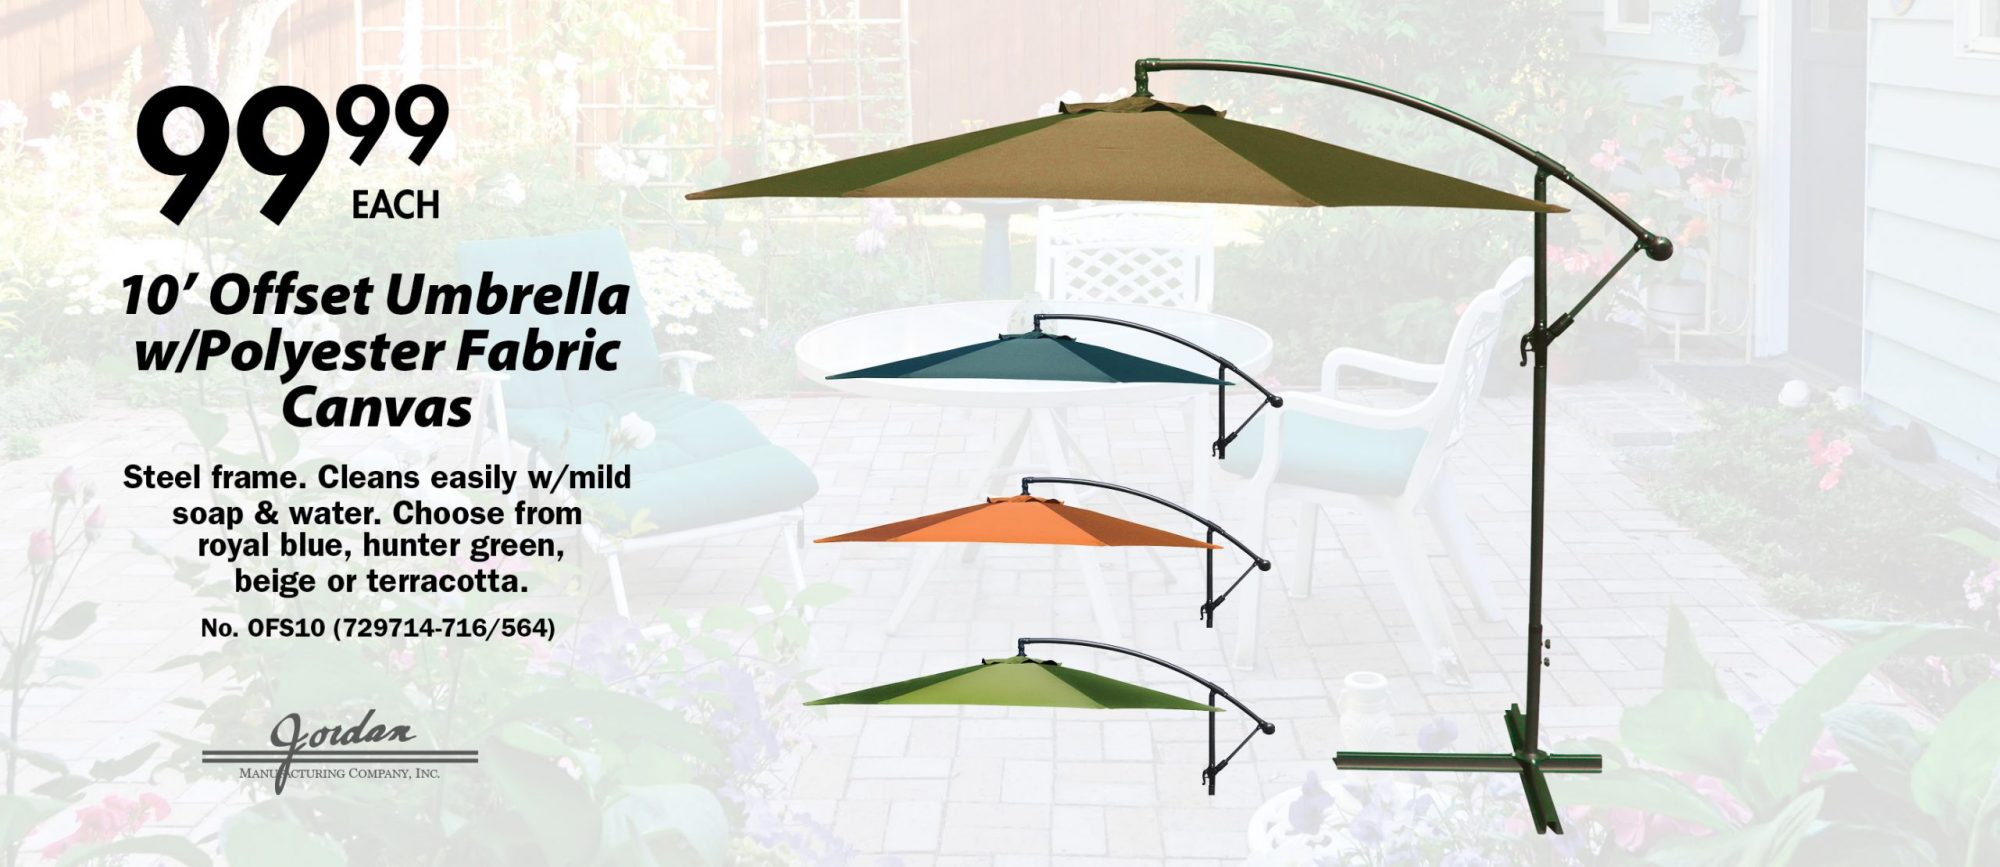 $99.99 each. 10' Offset Umbrella w/Polyester Fabric. Canvas Steel frame. Cleans easily w/mild soap & water. Choose from royal blue, hunter green, beige or terra cotta. No. OFS10 (729714-716/564)